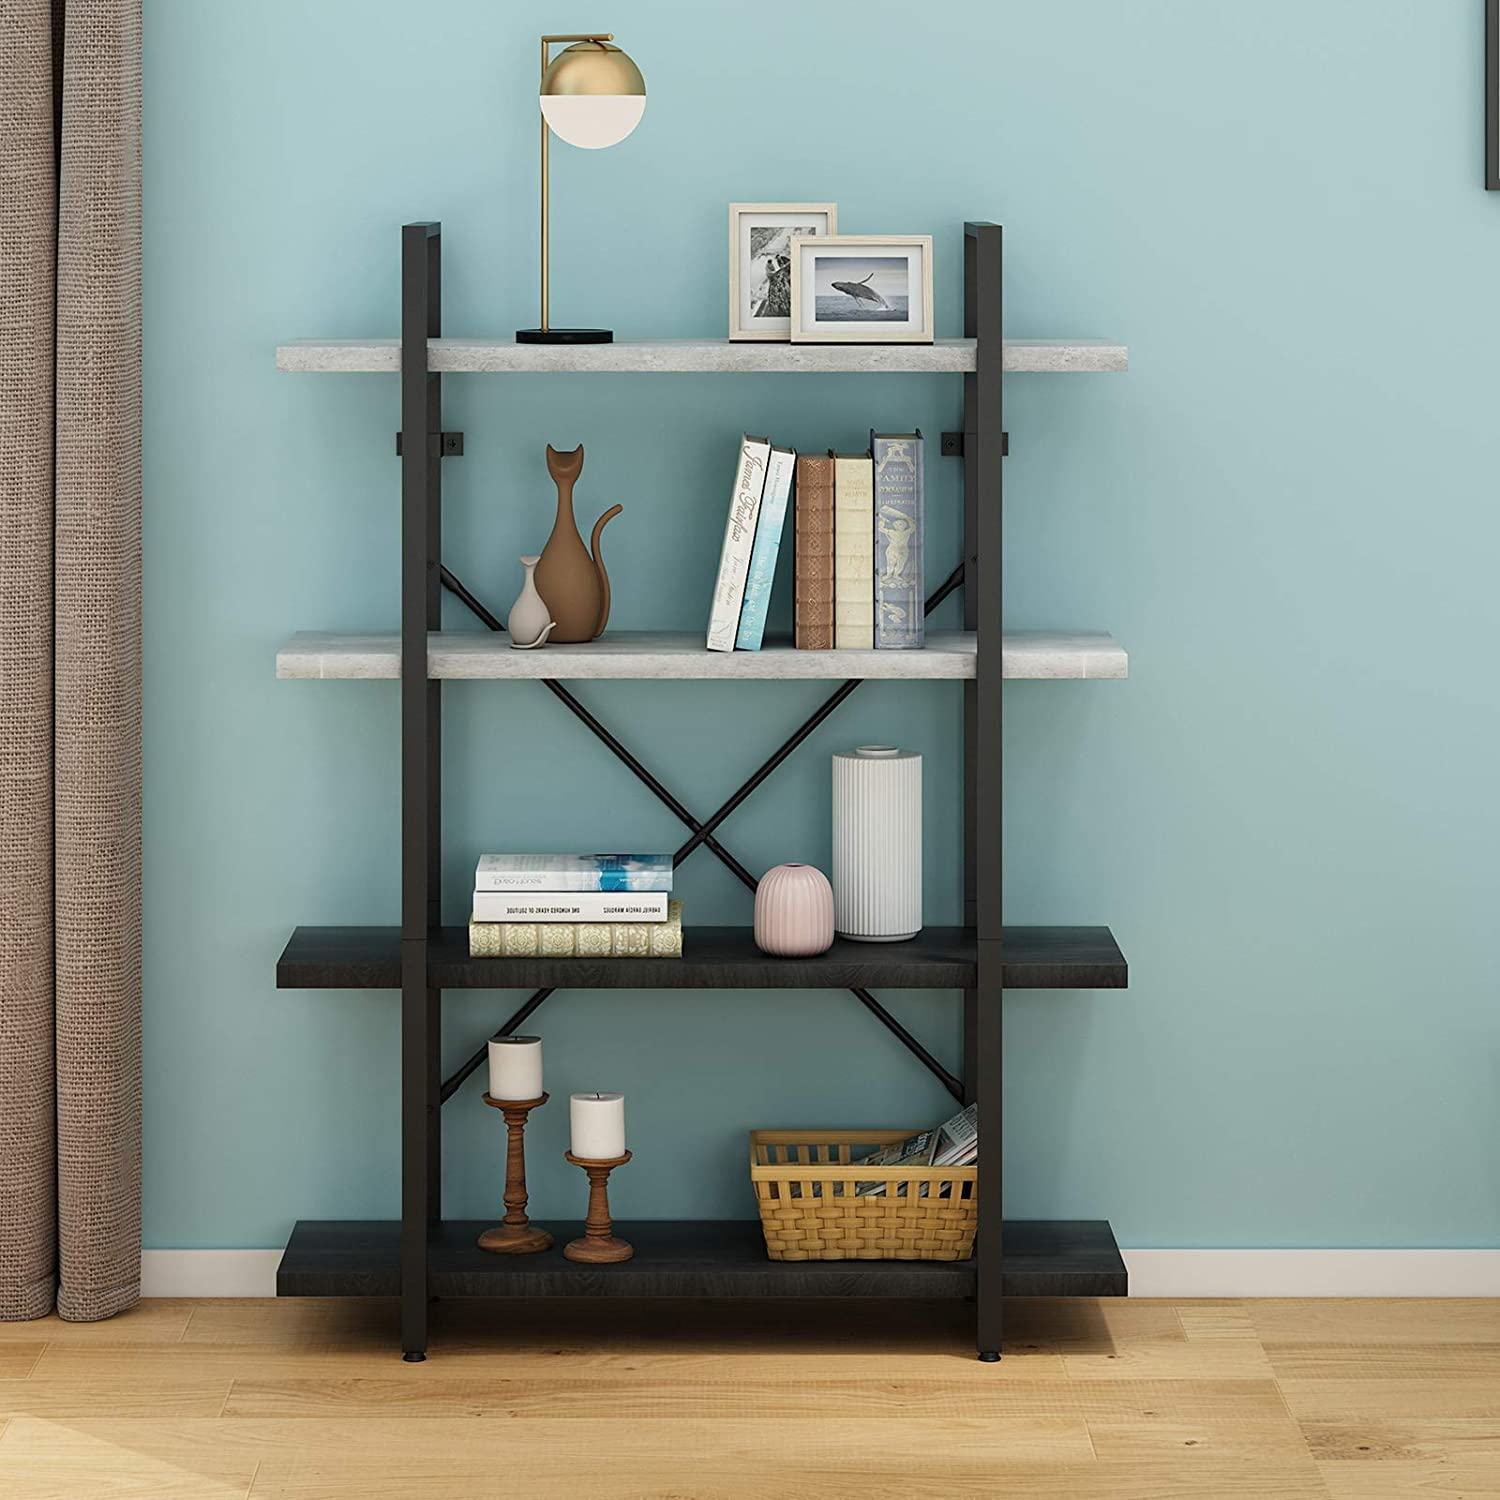 O&K Furniture 4-Tier Bookshelf, Modern Industrial Etagere Bookcase, Open Standing Shelving Unit for Home Office Study--Height: 55 Inch